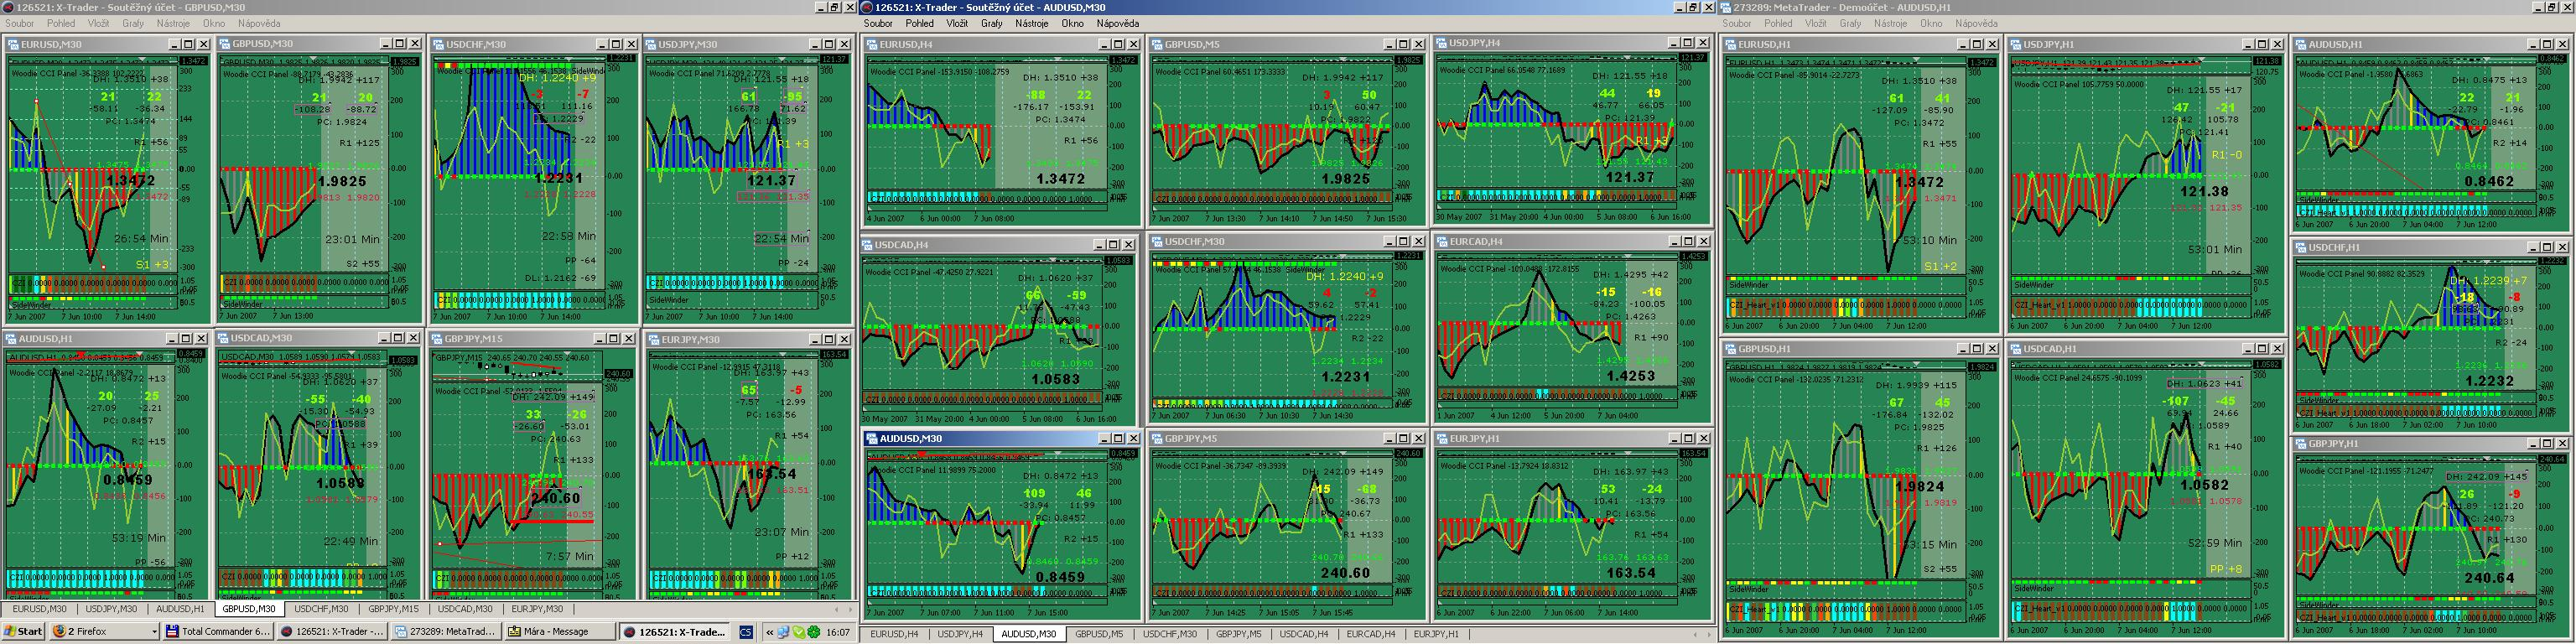 Mt4 Charttime Convertor Found Need Range Bar Indicator Trading